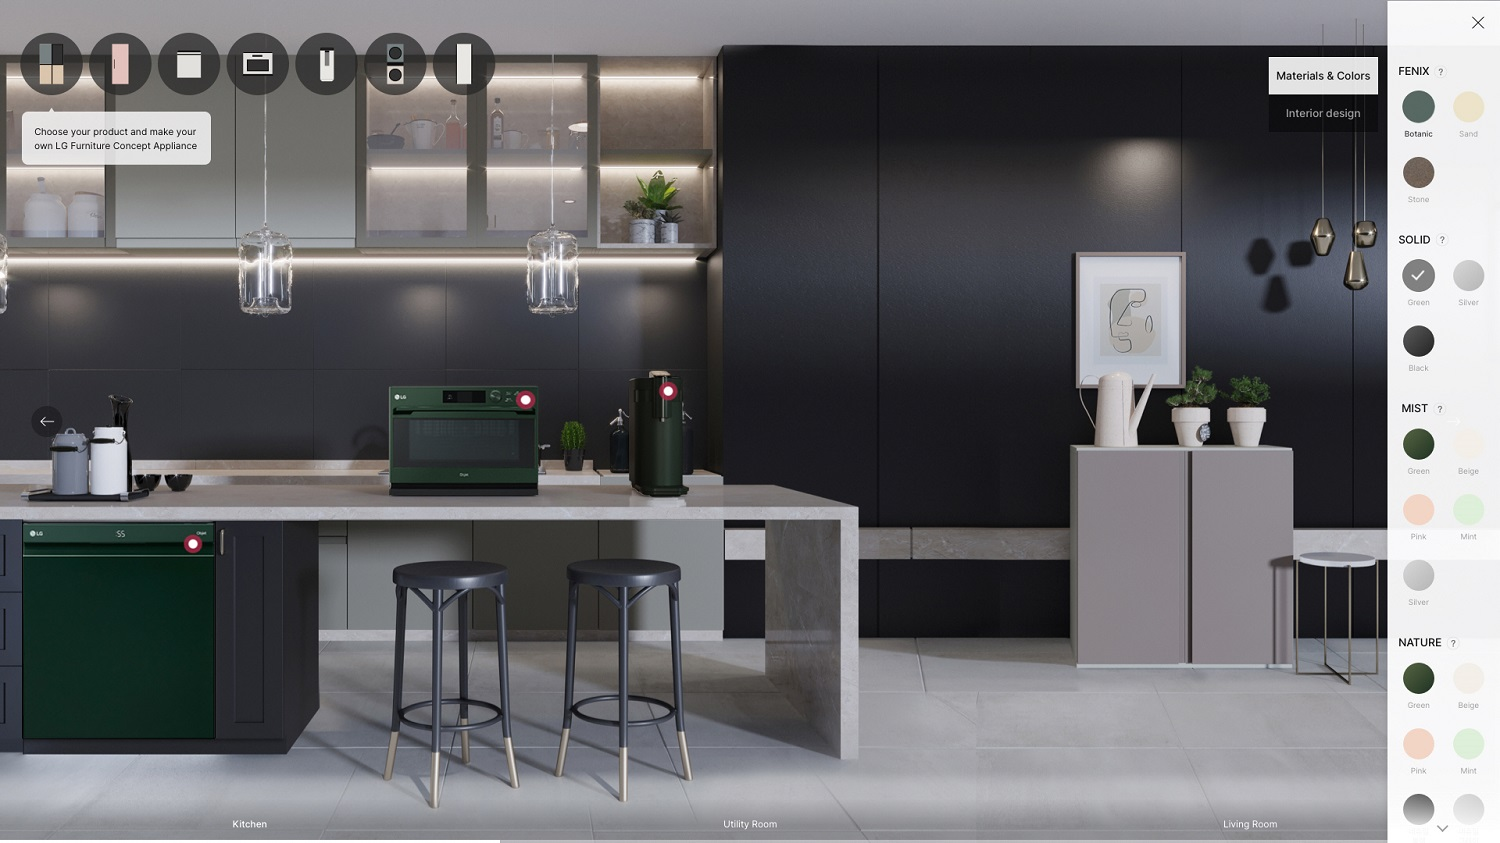 LG Furniture Concept Appliances Debuts at CES 2021